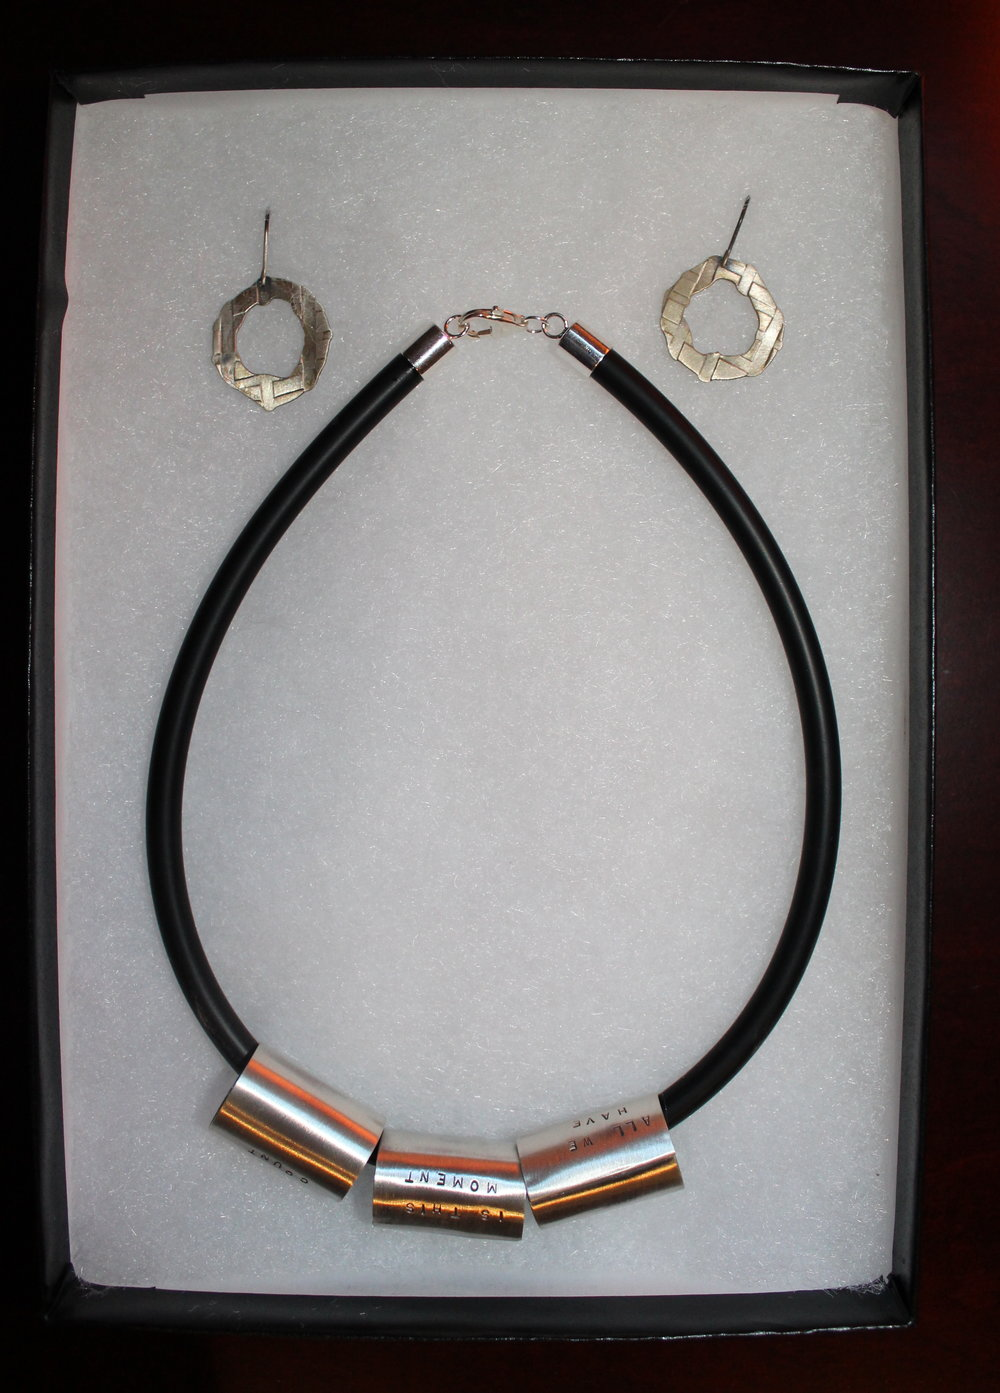 Beth North Designs -Silver Tubing Necklace and Circle Earrings - Value $316